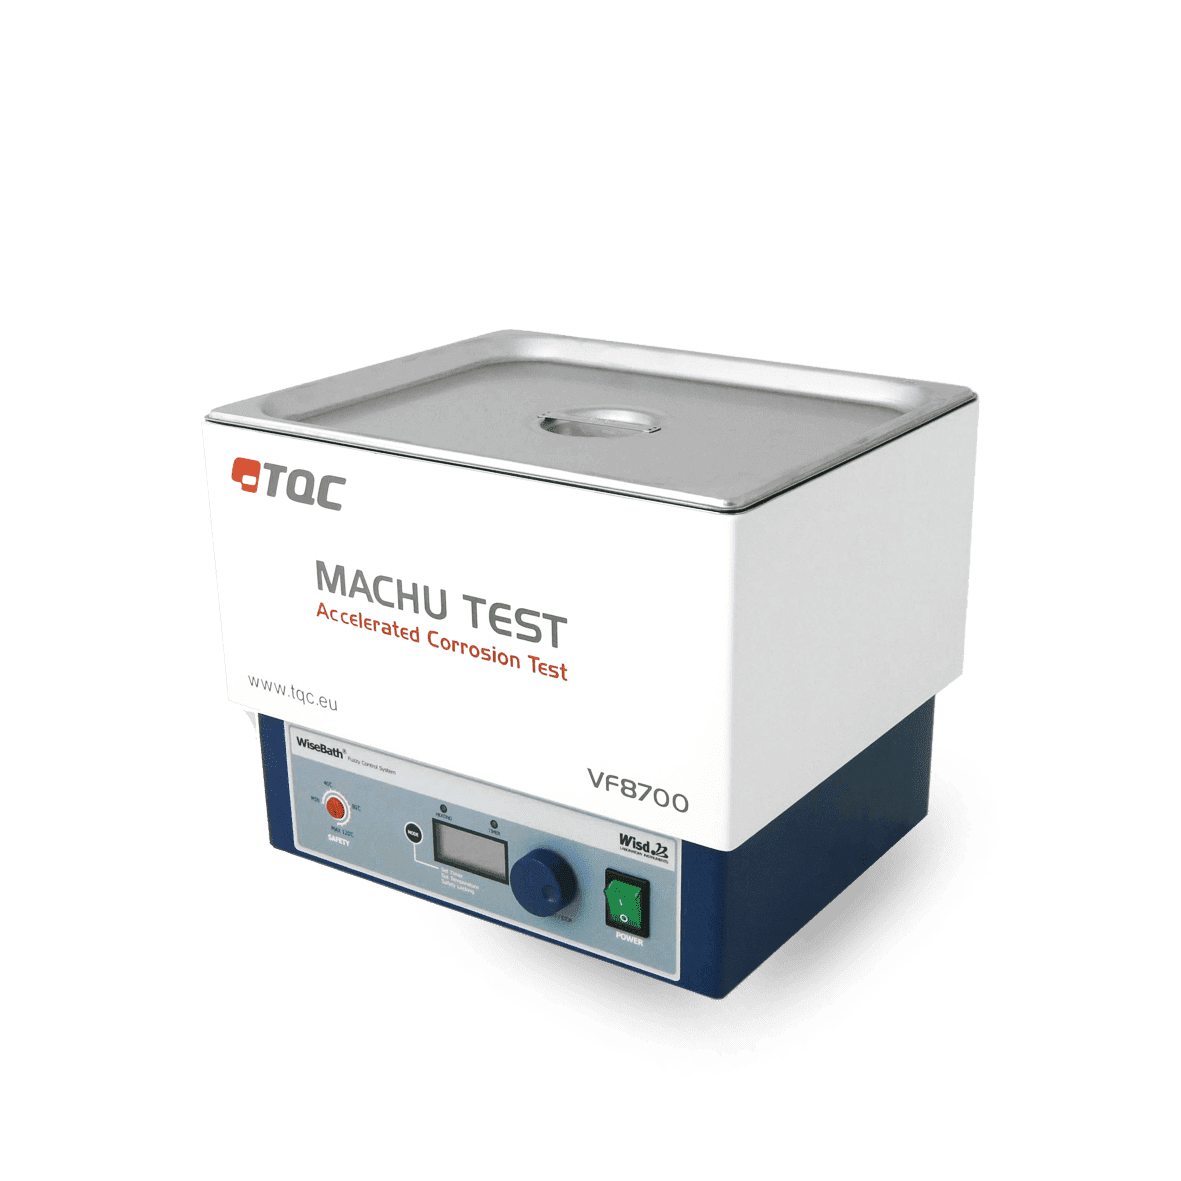 Machu test bath,Qualicoat,Machu test,TQCSheen,Korozyon